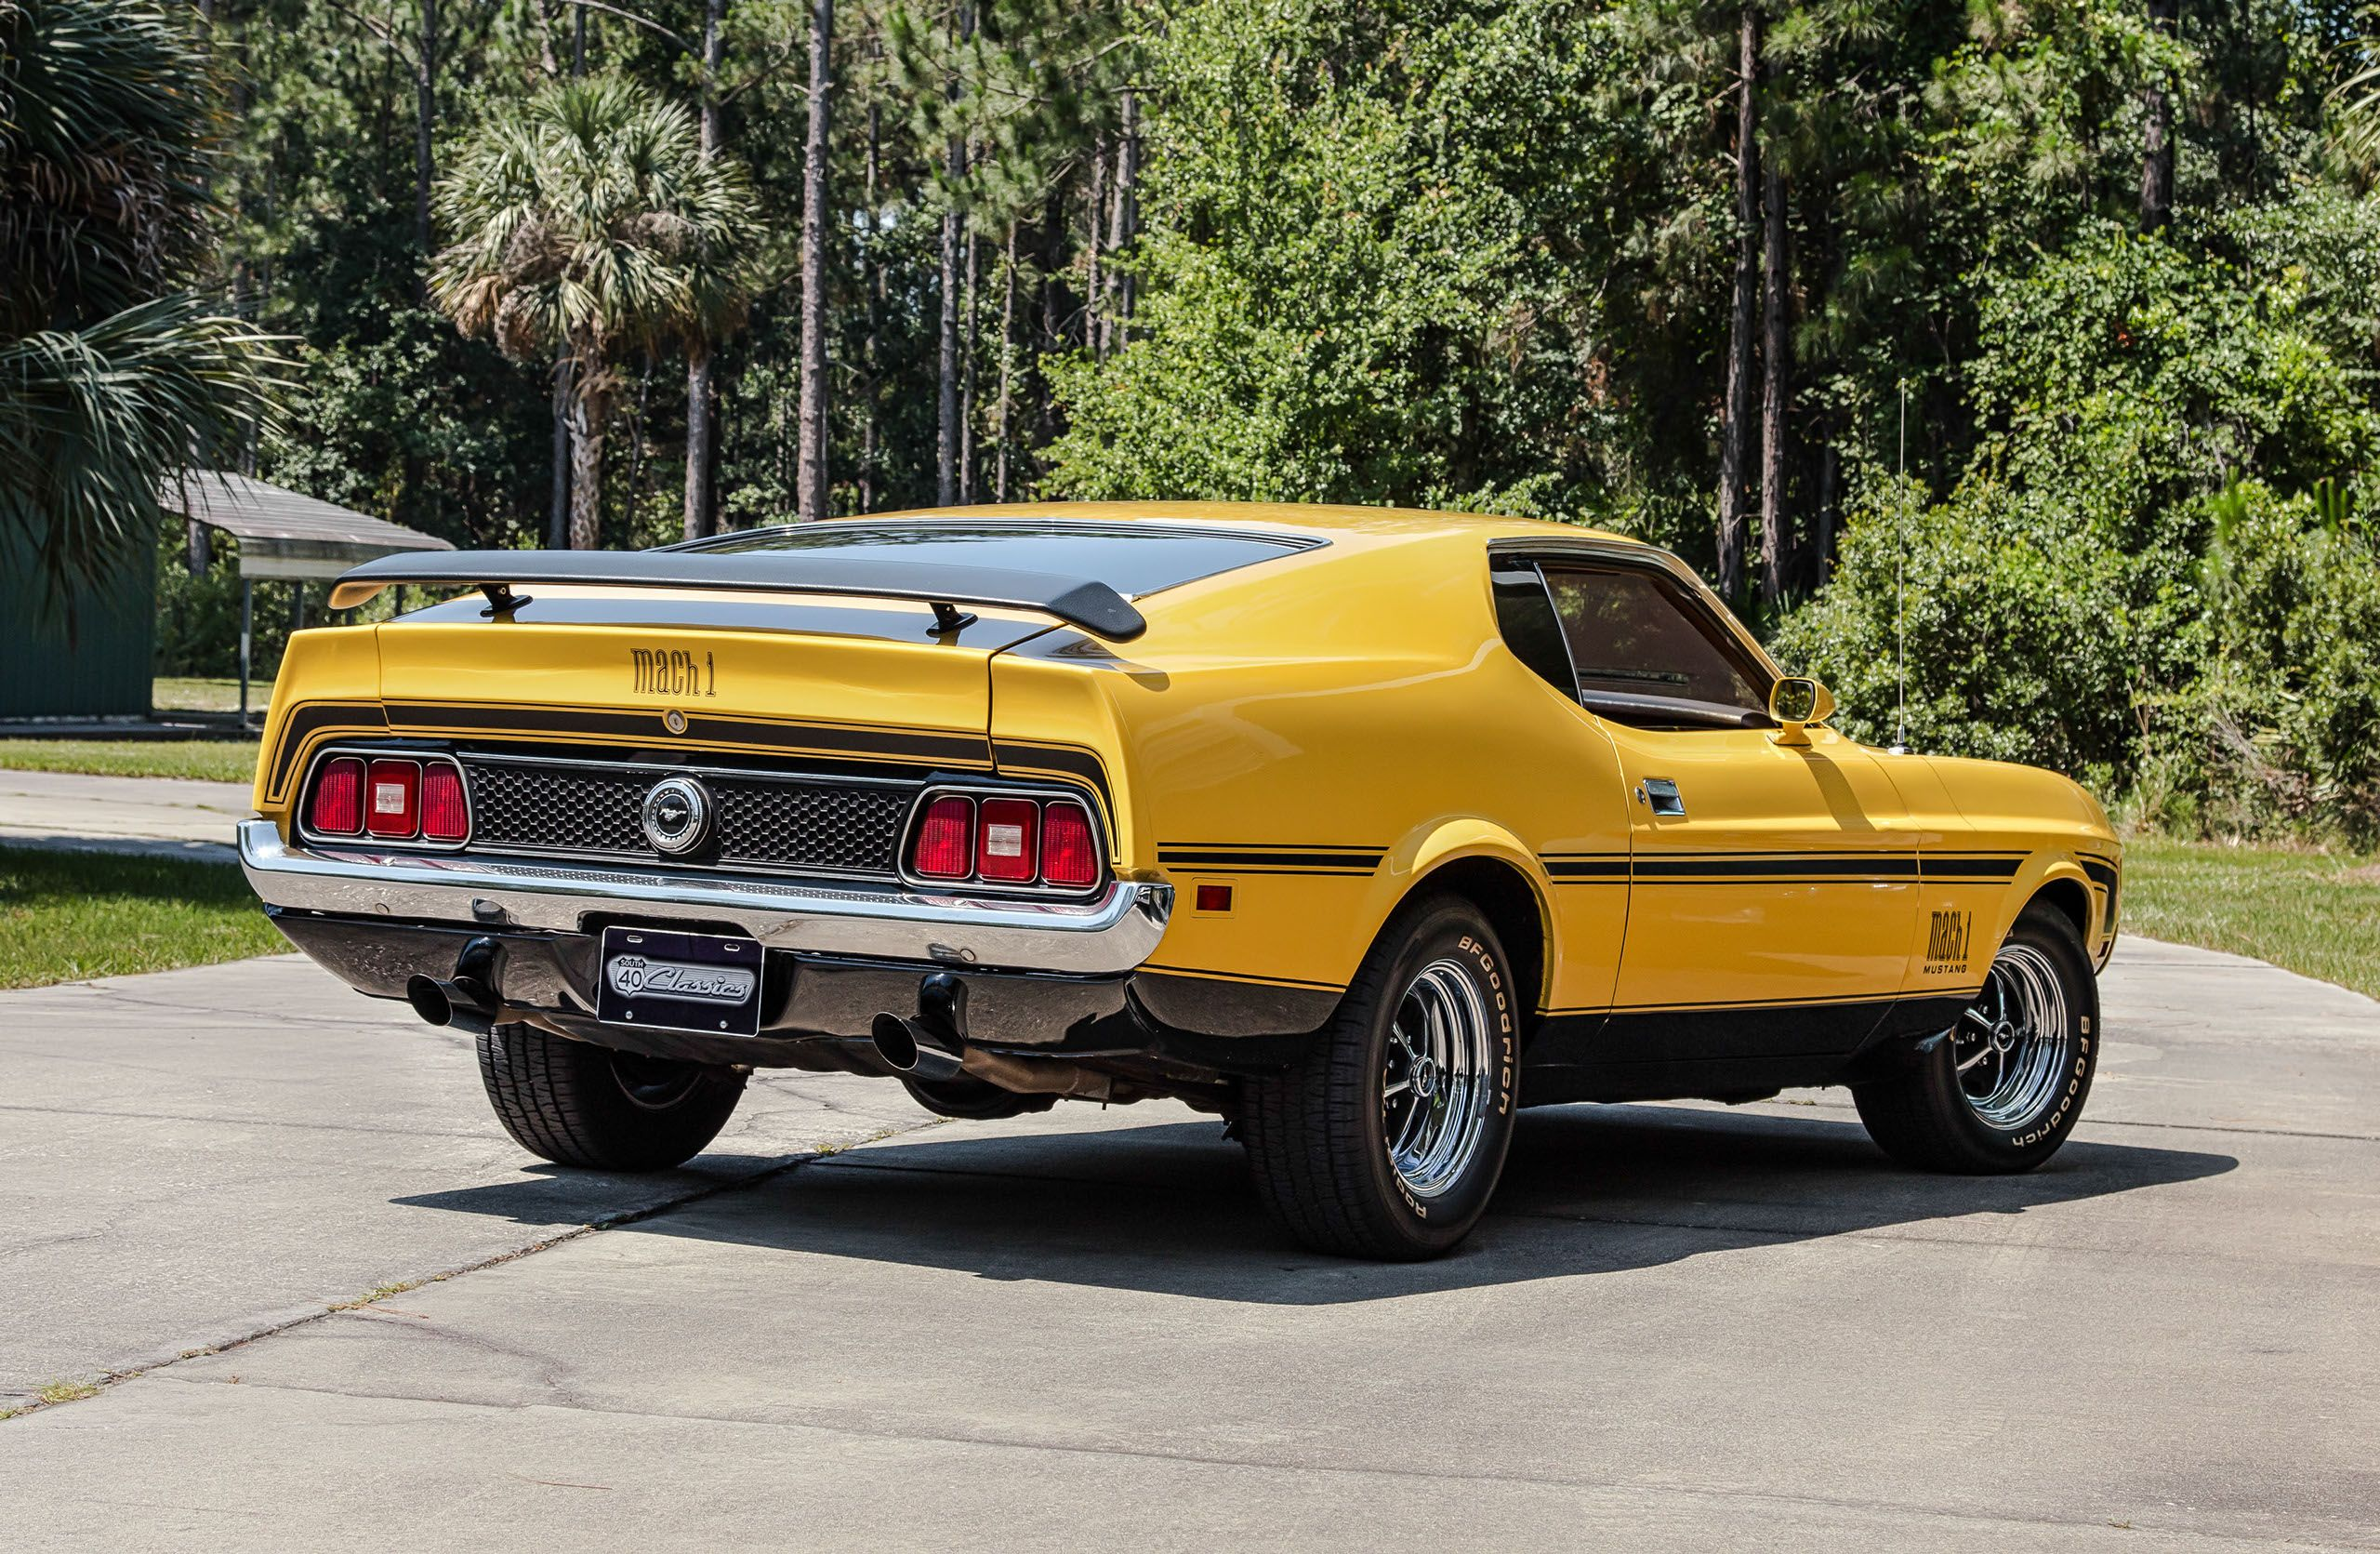 72 ford mach 1 mustang